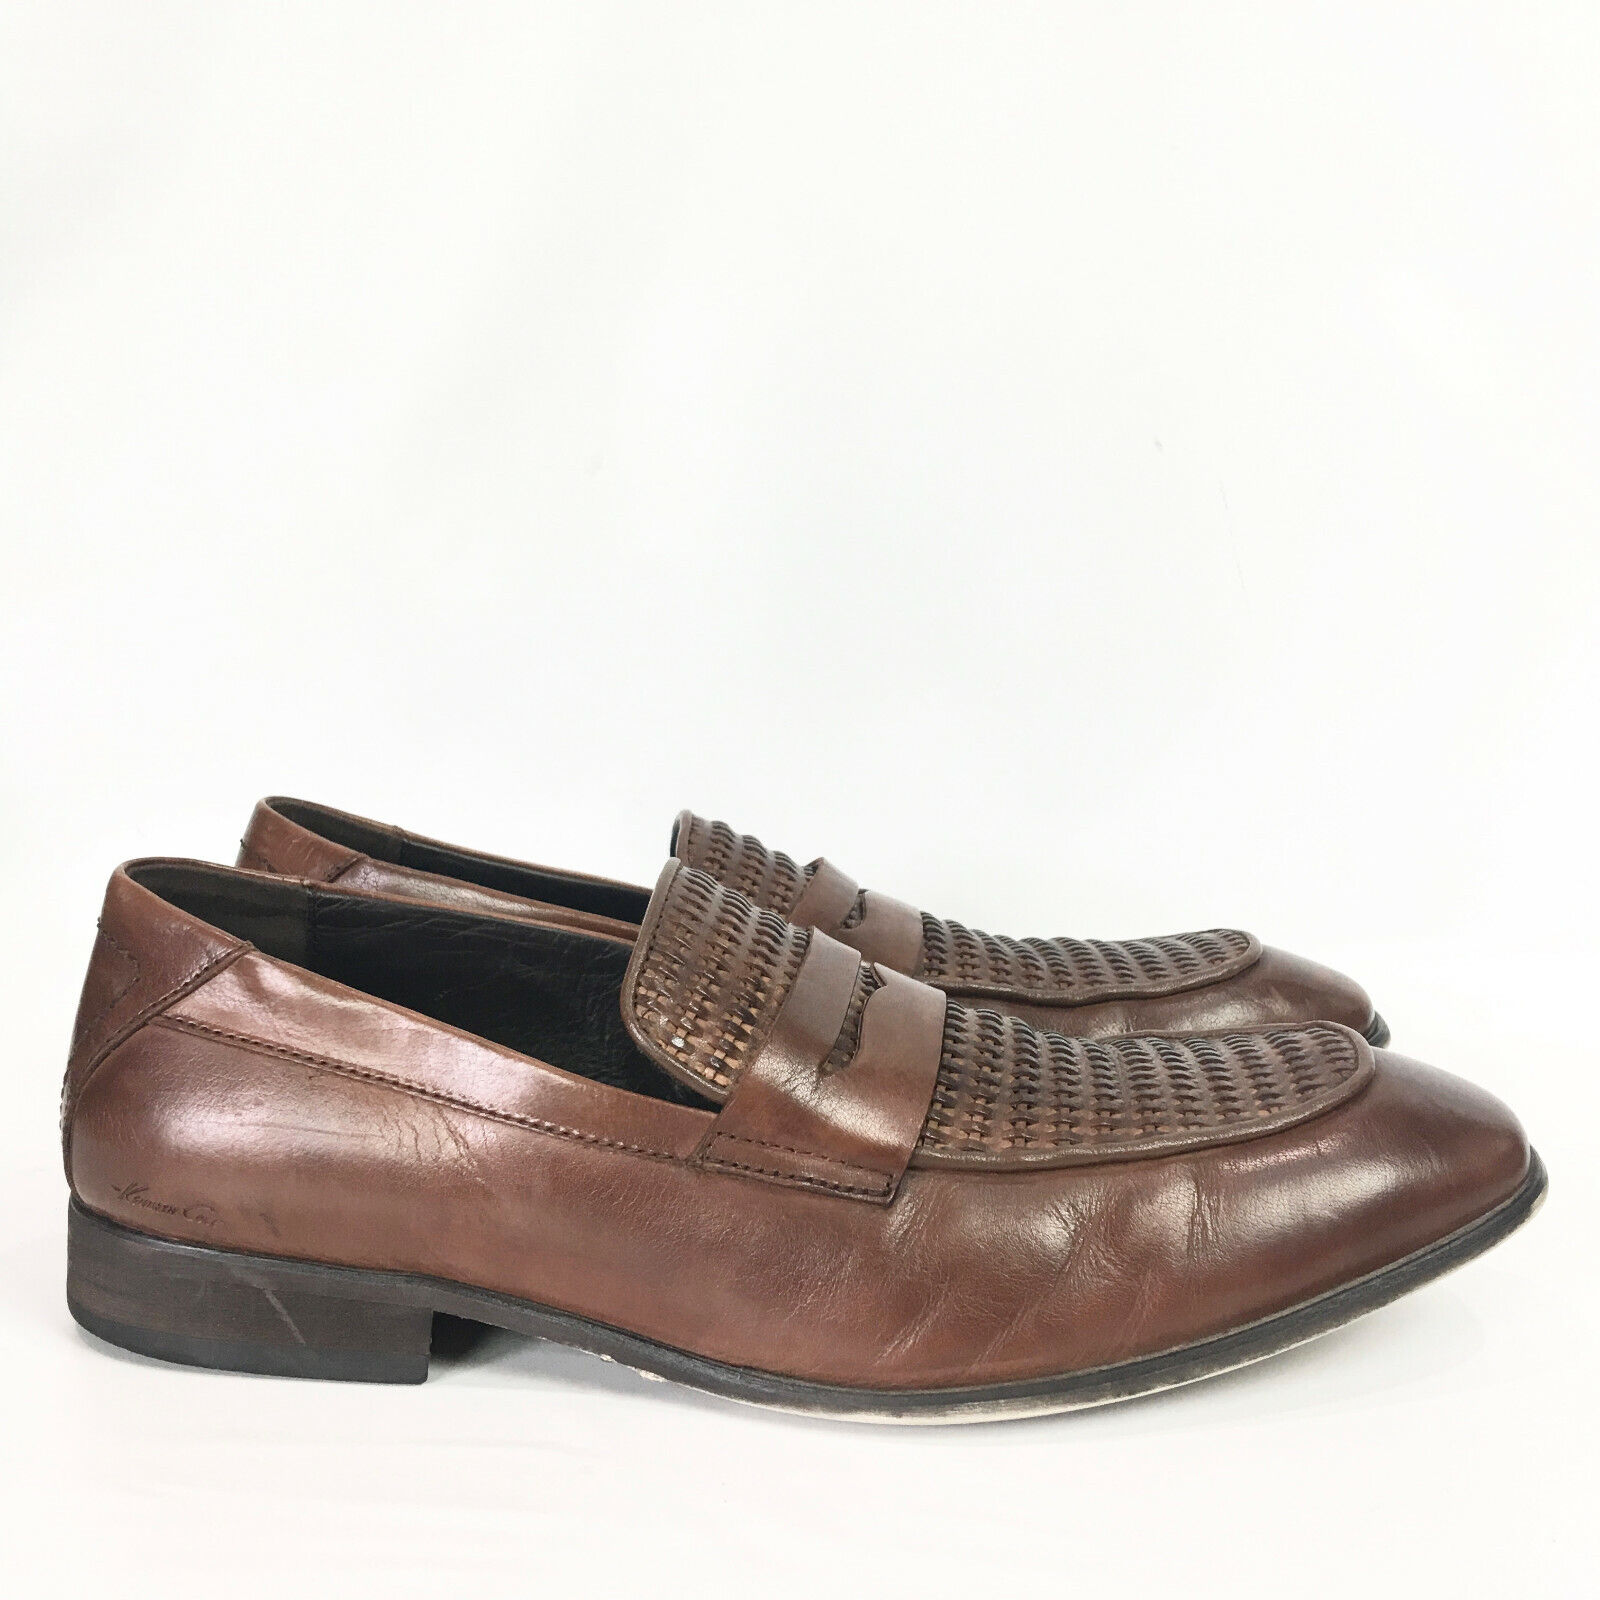 Kenneth Cole Penny Loafers Mens 10 M Smooth N Suave Brown Leather Dress Shoes